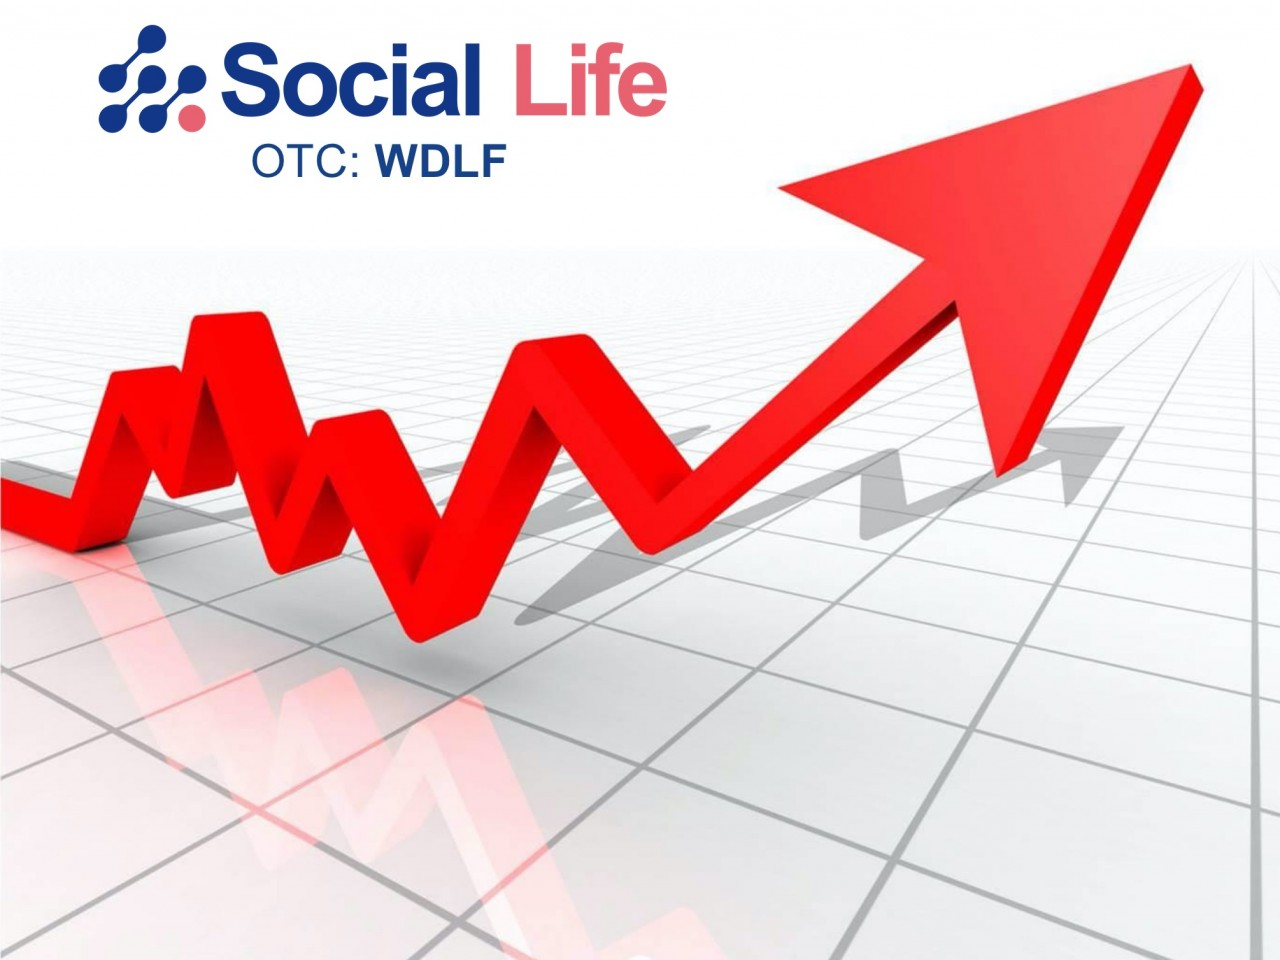 Social Life Network, Inc. Announces Record 119% Year Over Year Revenue Growth